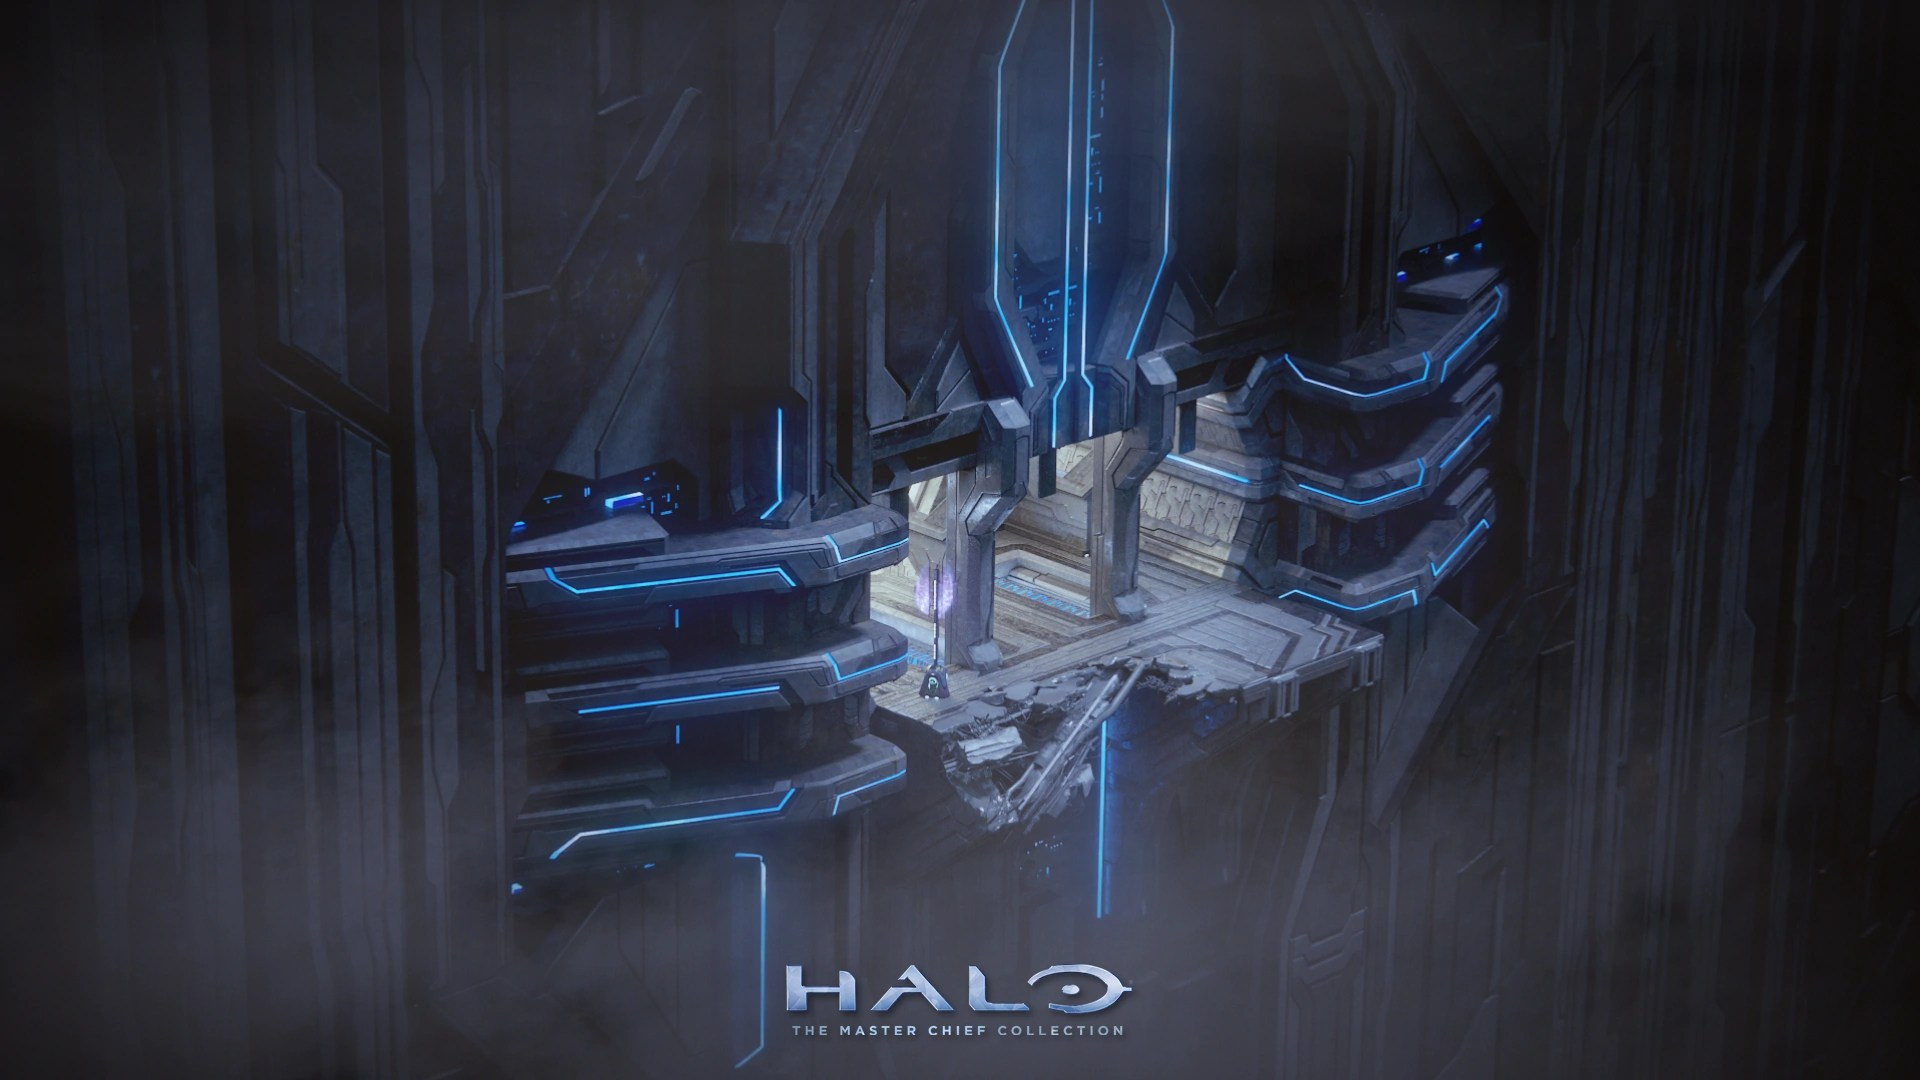 Halo Wallpaper Fall Of Reach Sacred Icon Halo Nation Fandom Powered By Wikia